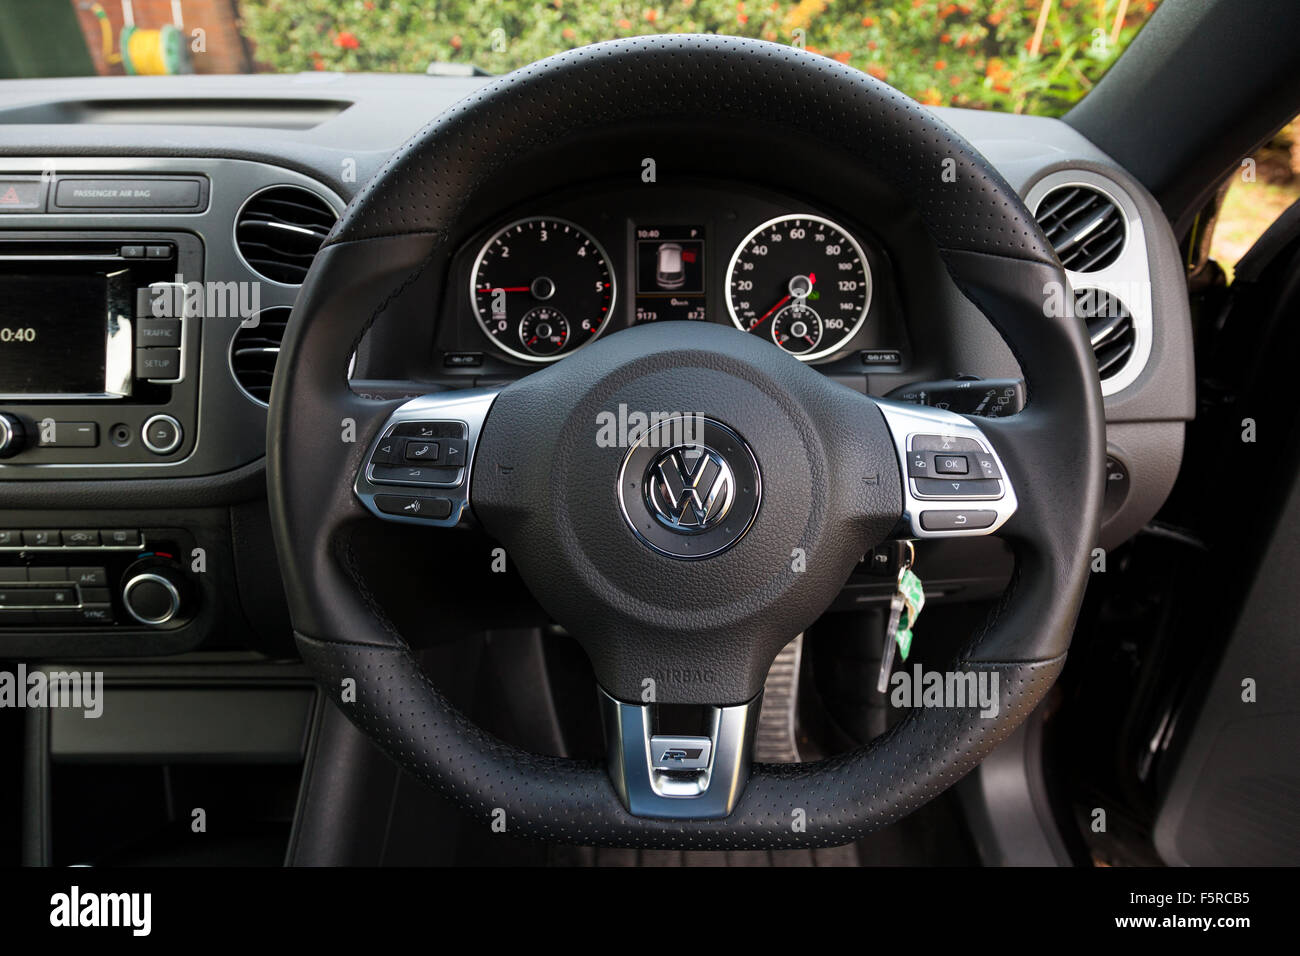 The interior of a 2015 VW Tiguan 2.0 TDi BlueMotion Technology R-Line car. - Stock Image